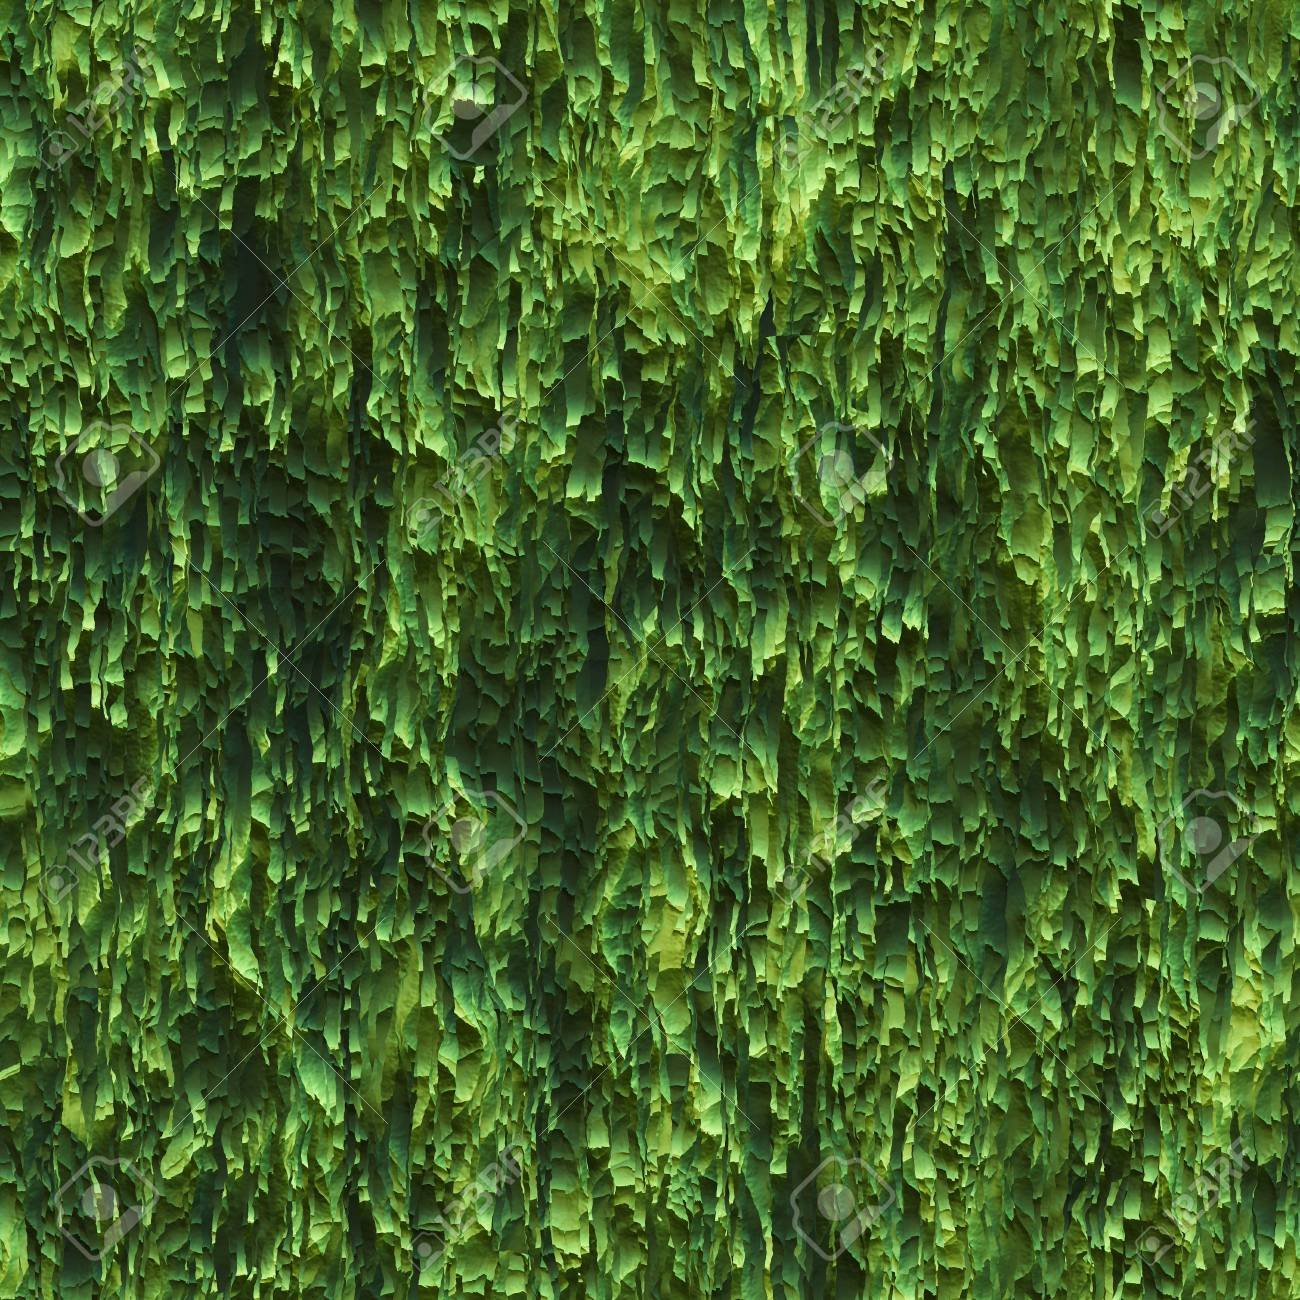 Seamless Texture Hanging Down Worn Out Ripped Rags Green Cloth